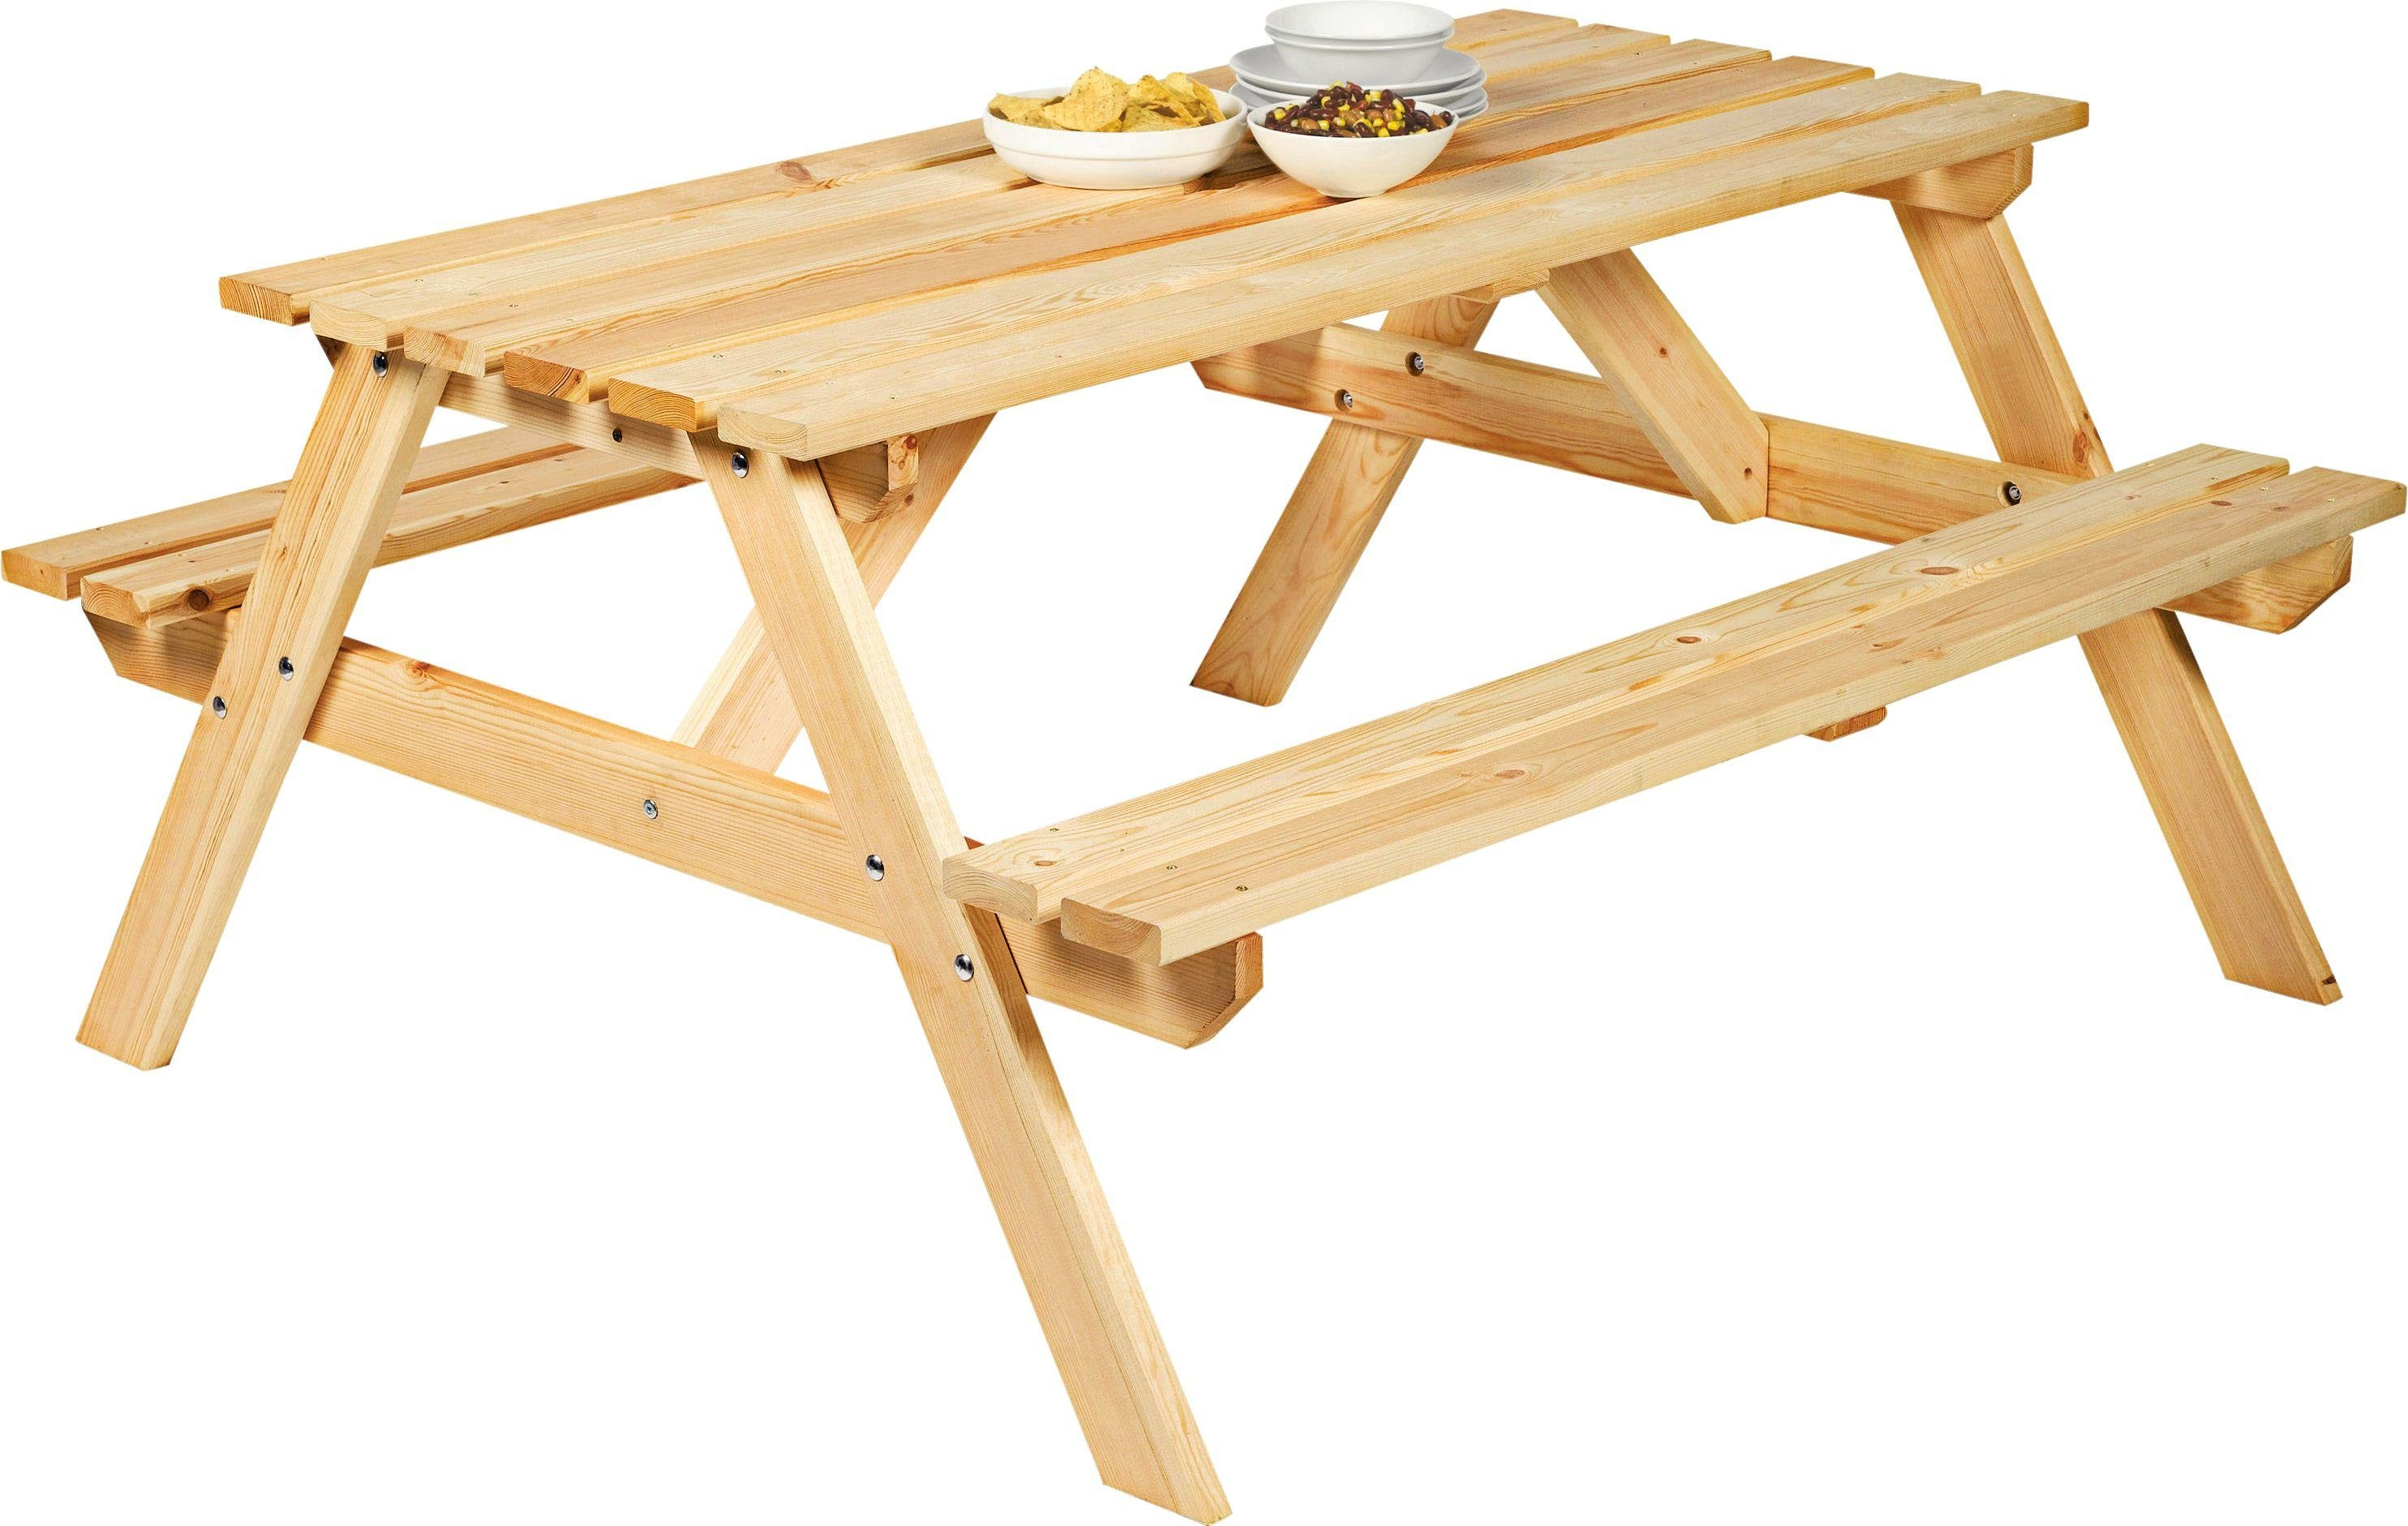 Buy FSC Wood Garden Table And Chair Sets At Argos.co.uk